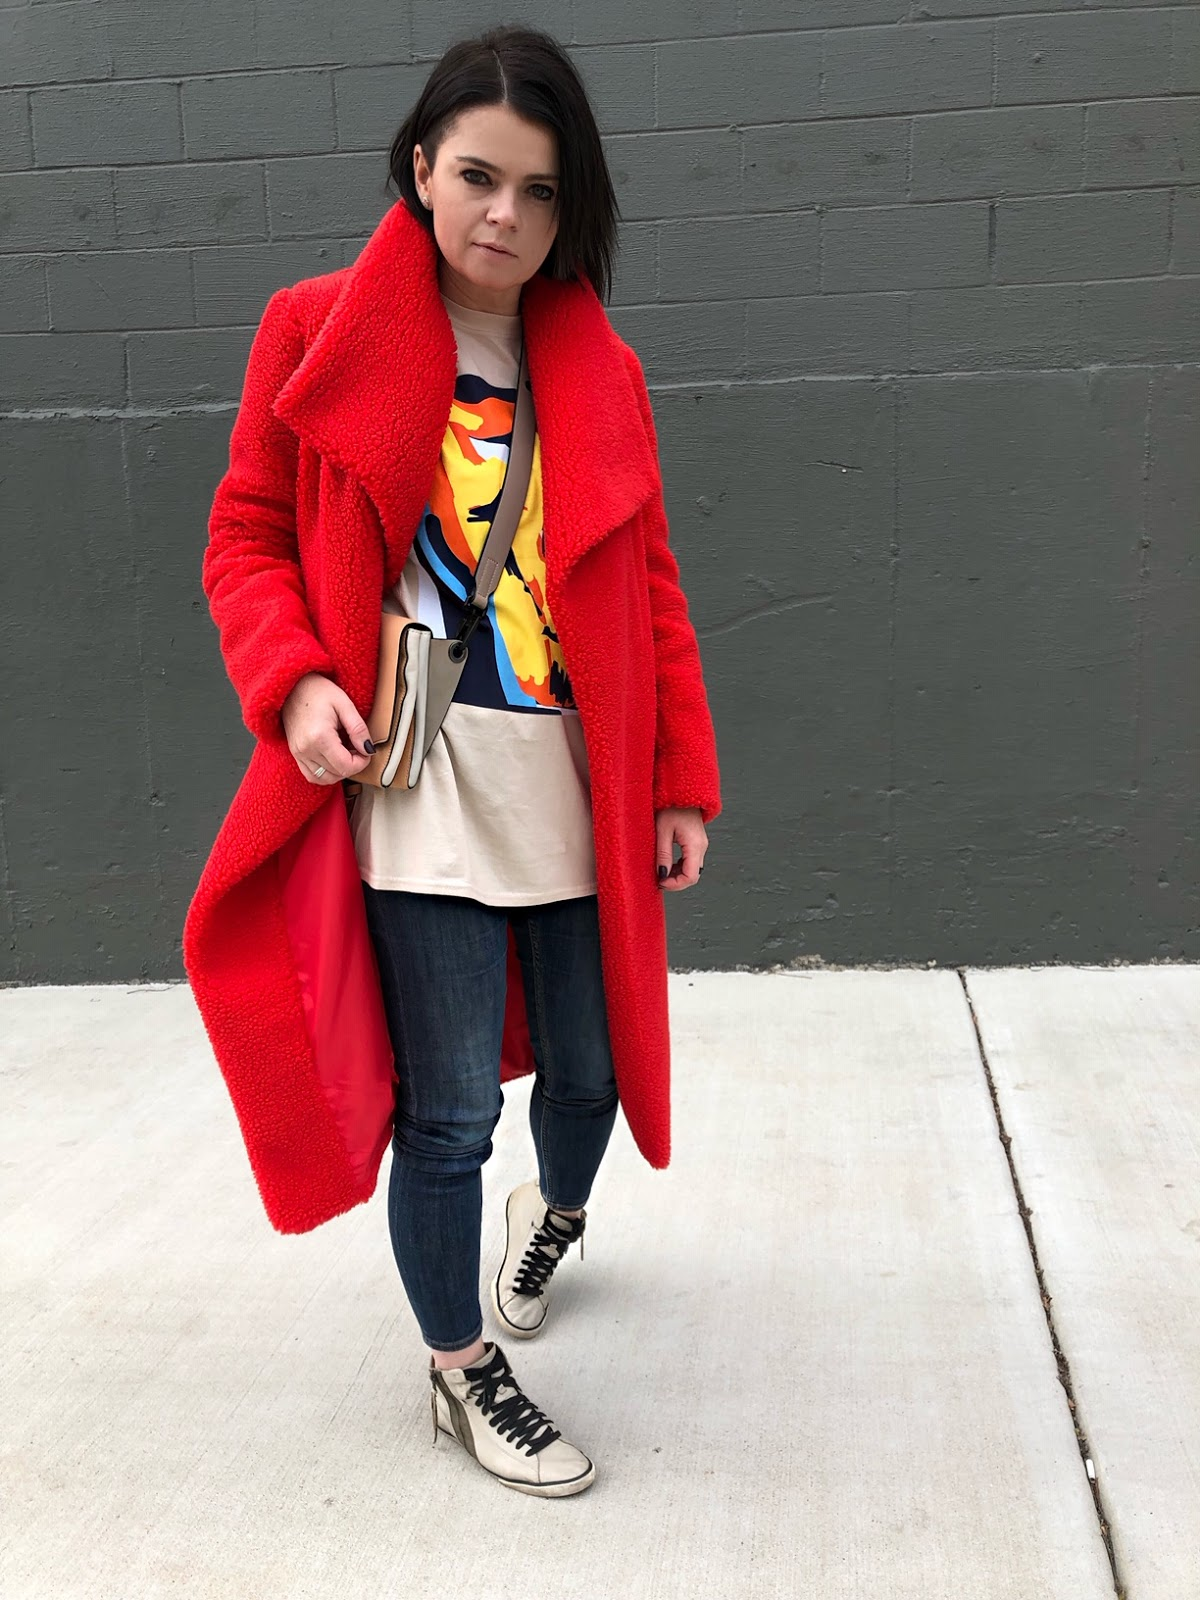 How to wear a red teddy coat and an abstract graphic t-shirt